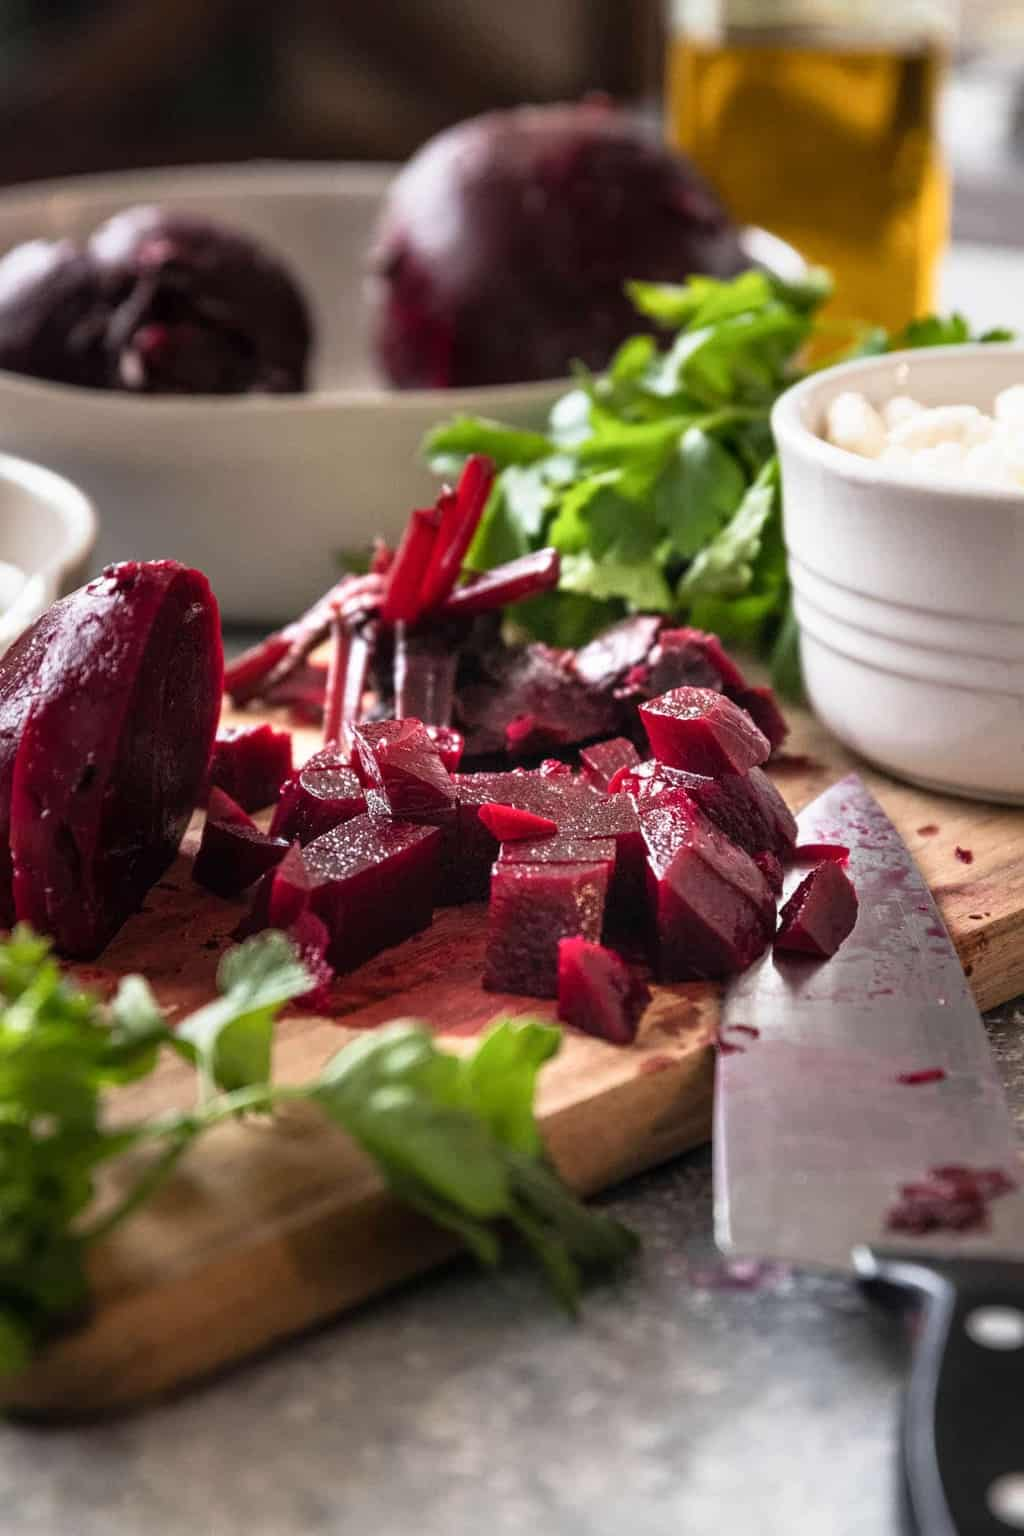 photo of the cubed beets for the beetroot salad recipe by top Houston lifestyle blogger Ashley Rose of Sugar & Cloth